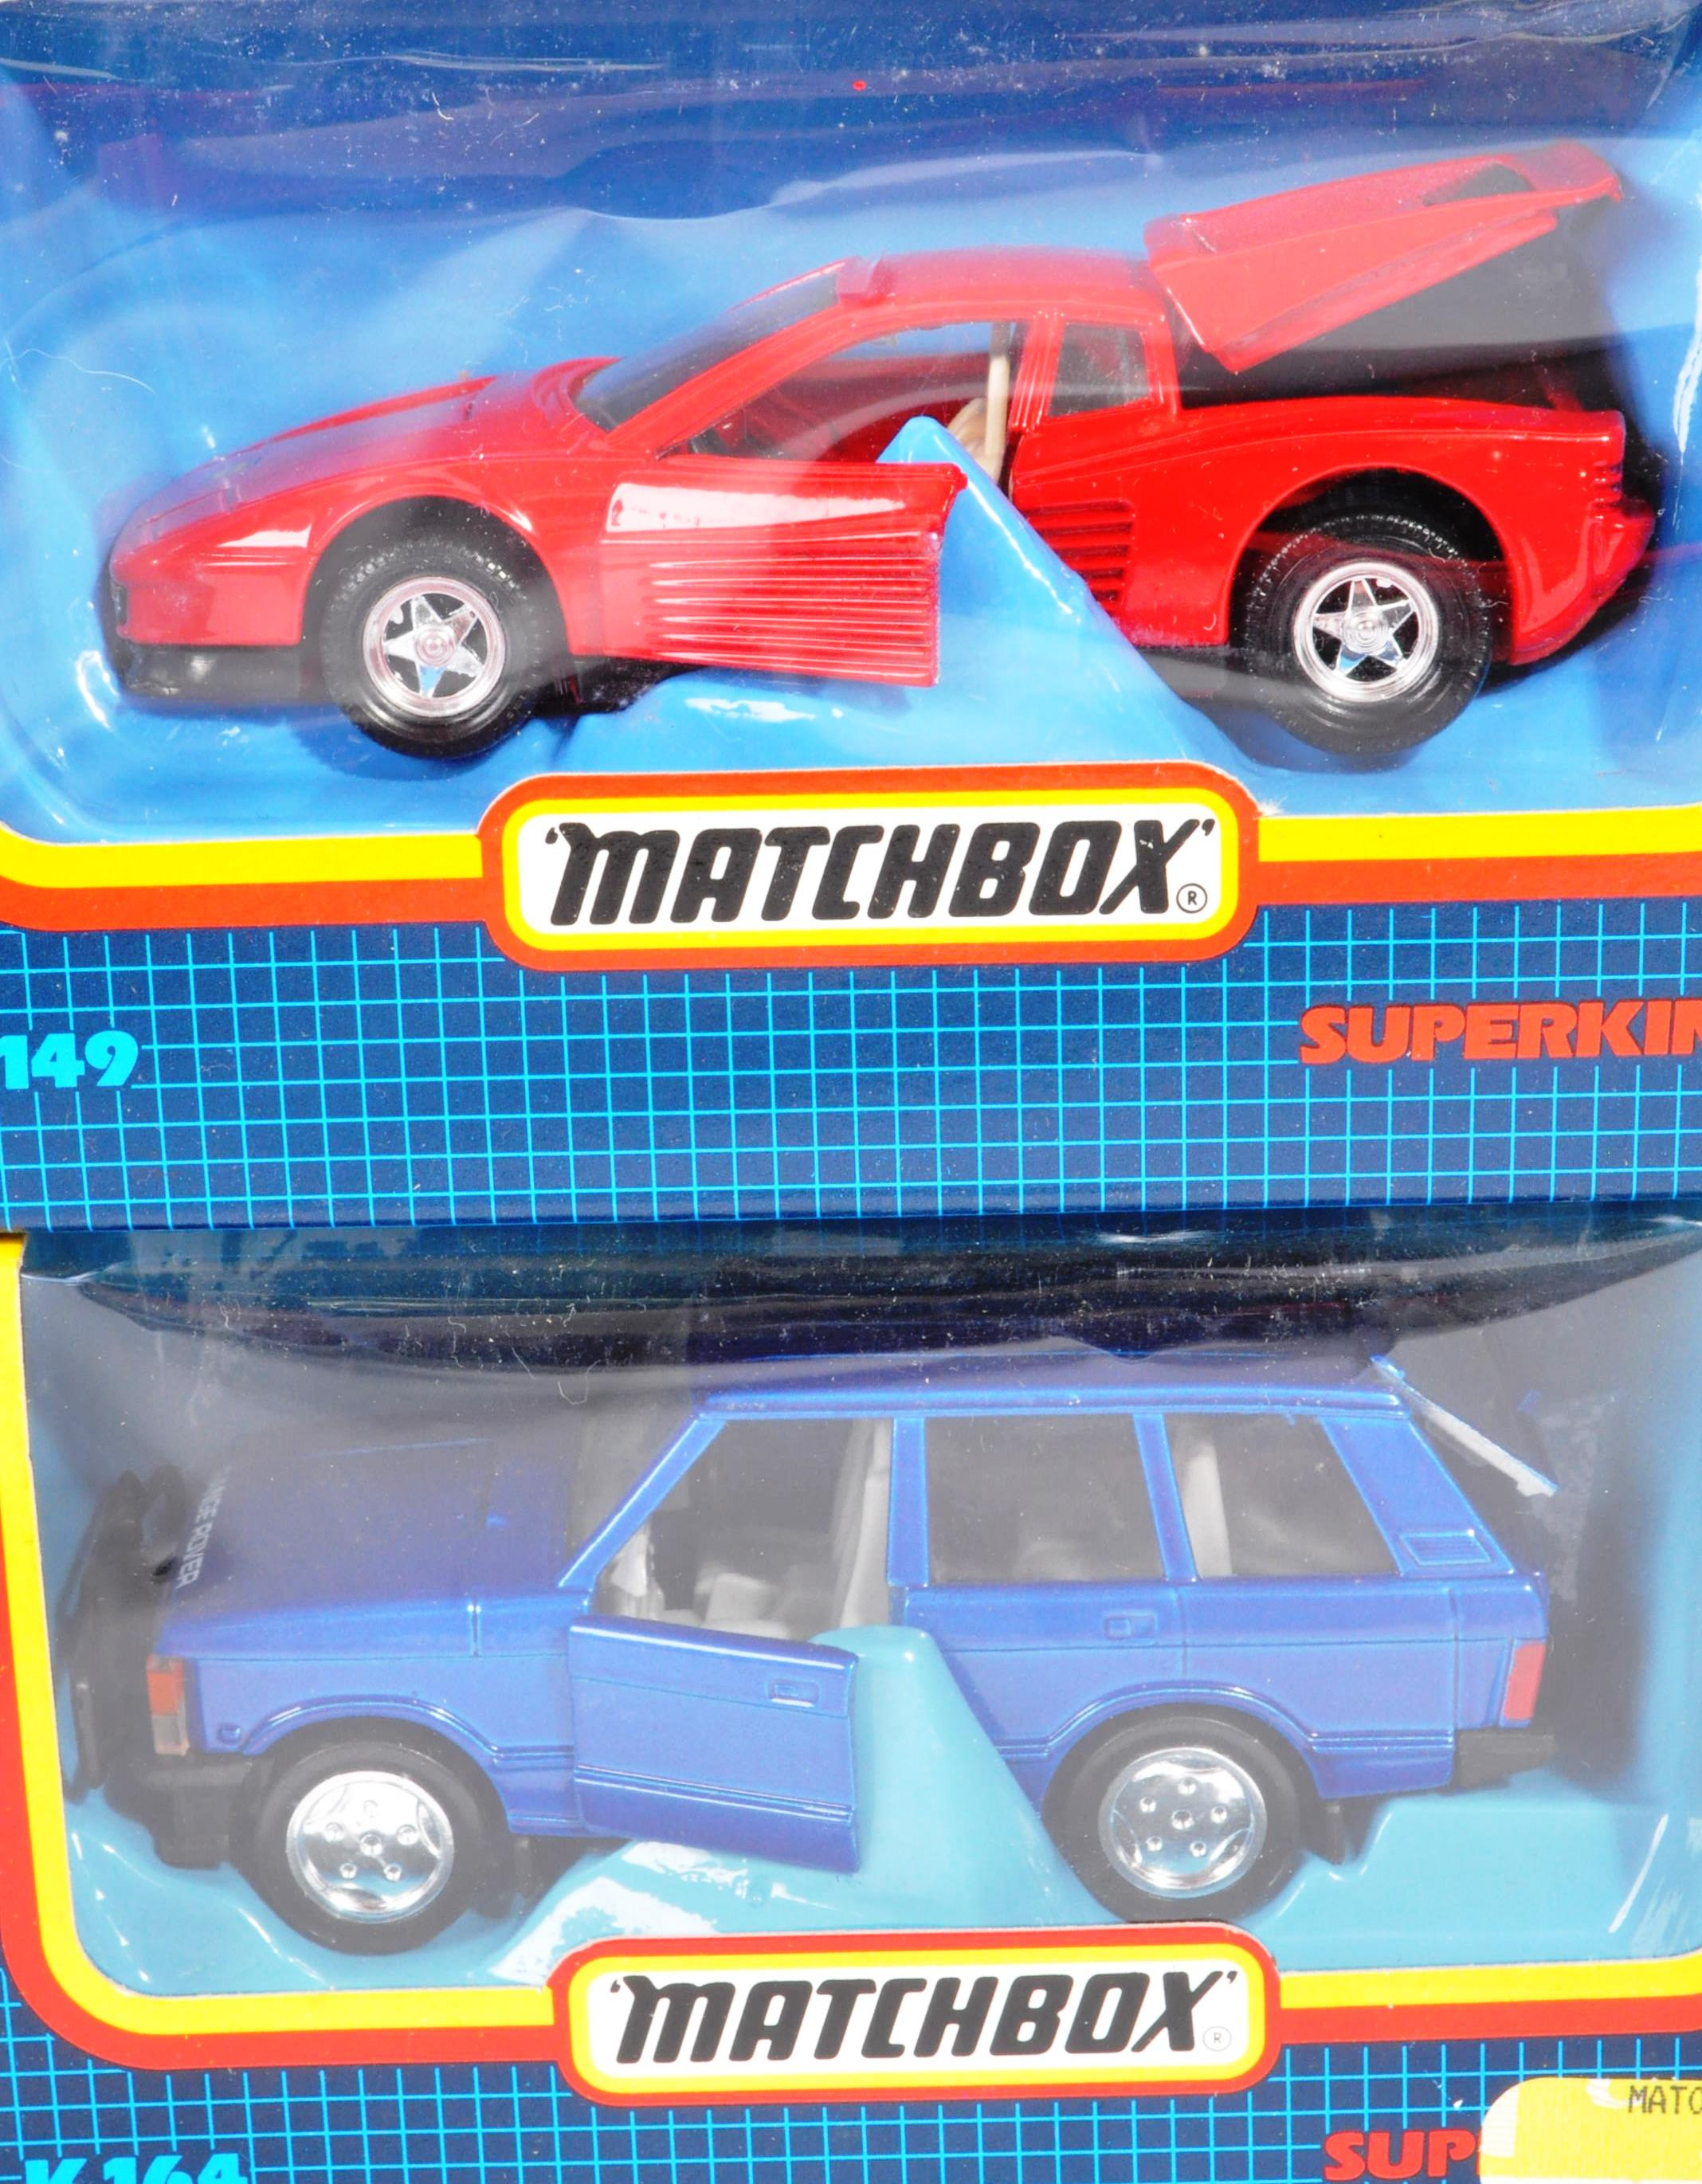 COLLECTION OF VINTAGE MATCHBOX SUPERKINGS DIECAST MODELS - Image 3 of 6